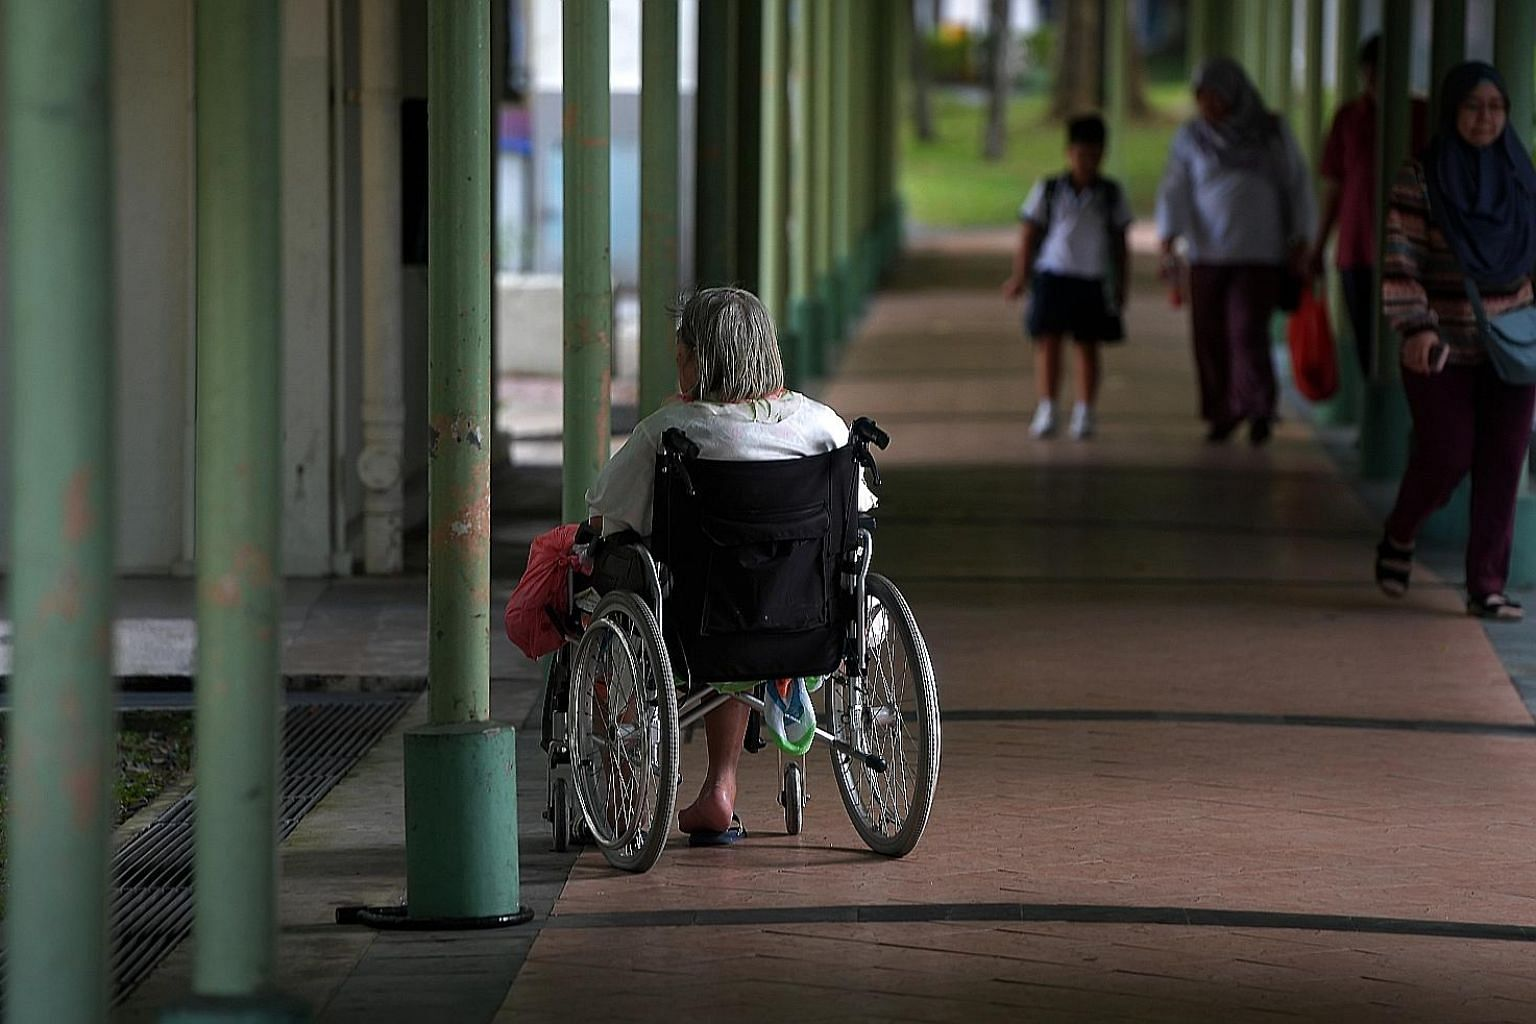 More options for the elderly: As the assisted living model is new, focus group discussions will be conducted to seek views on the proposed concept for assisted living in public housing, National Development Minister Lawrence Wong told Parliament.